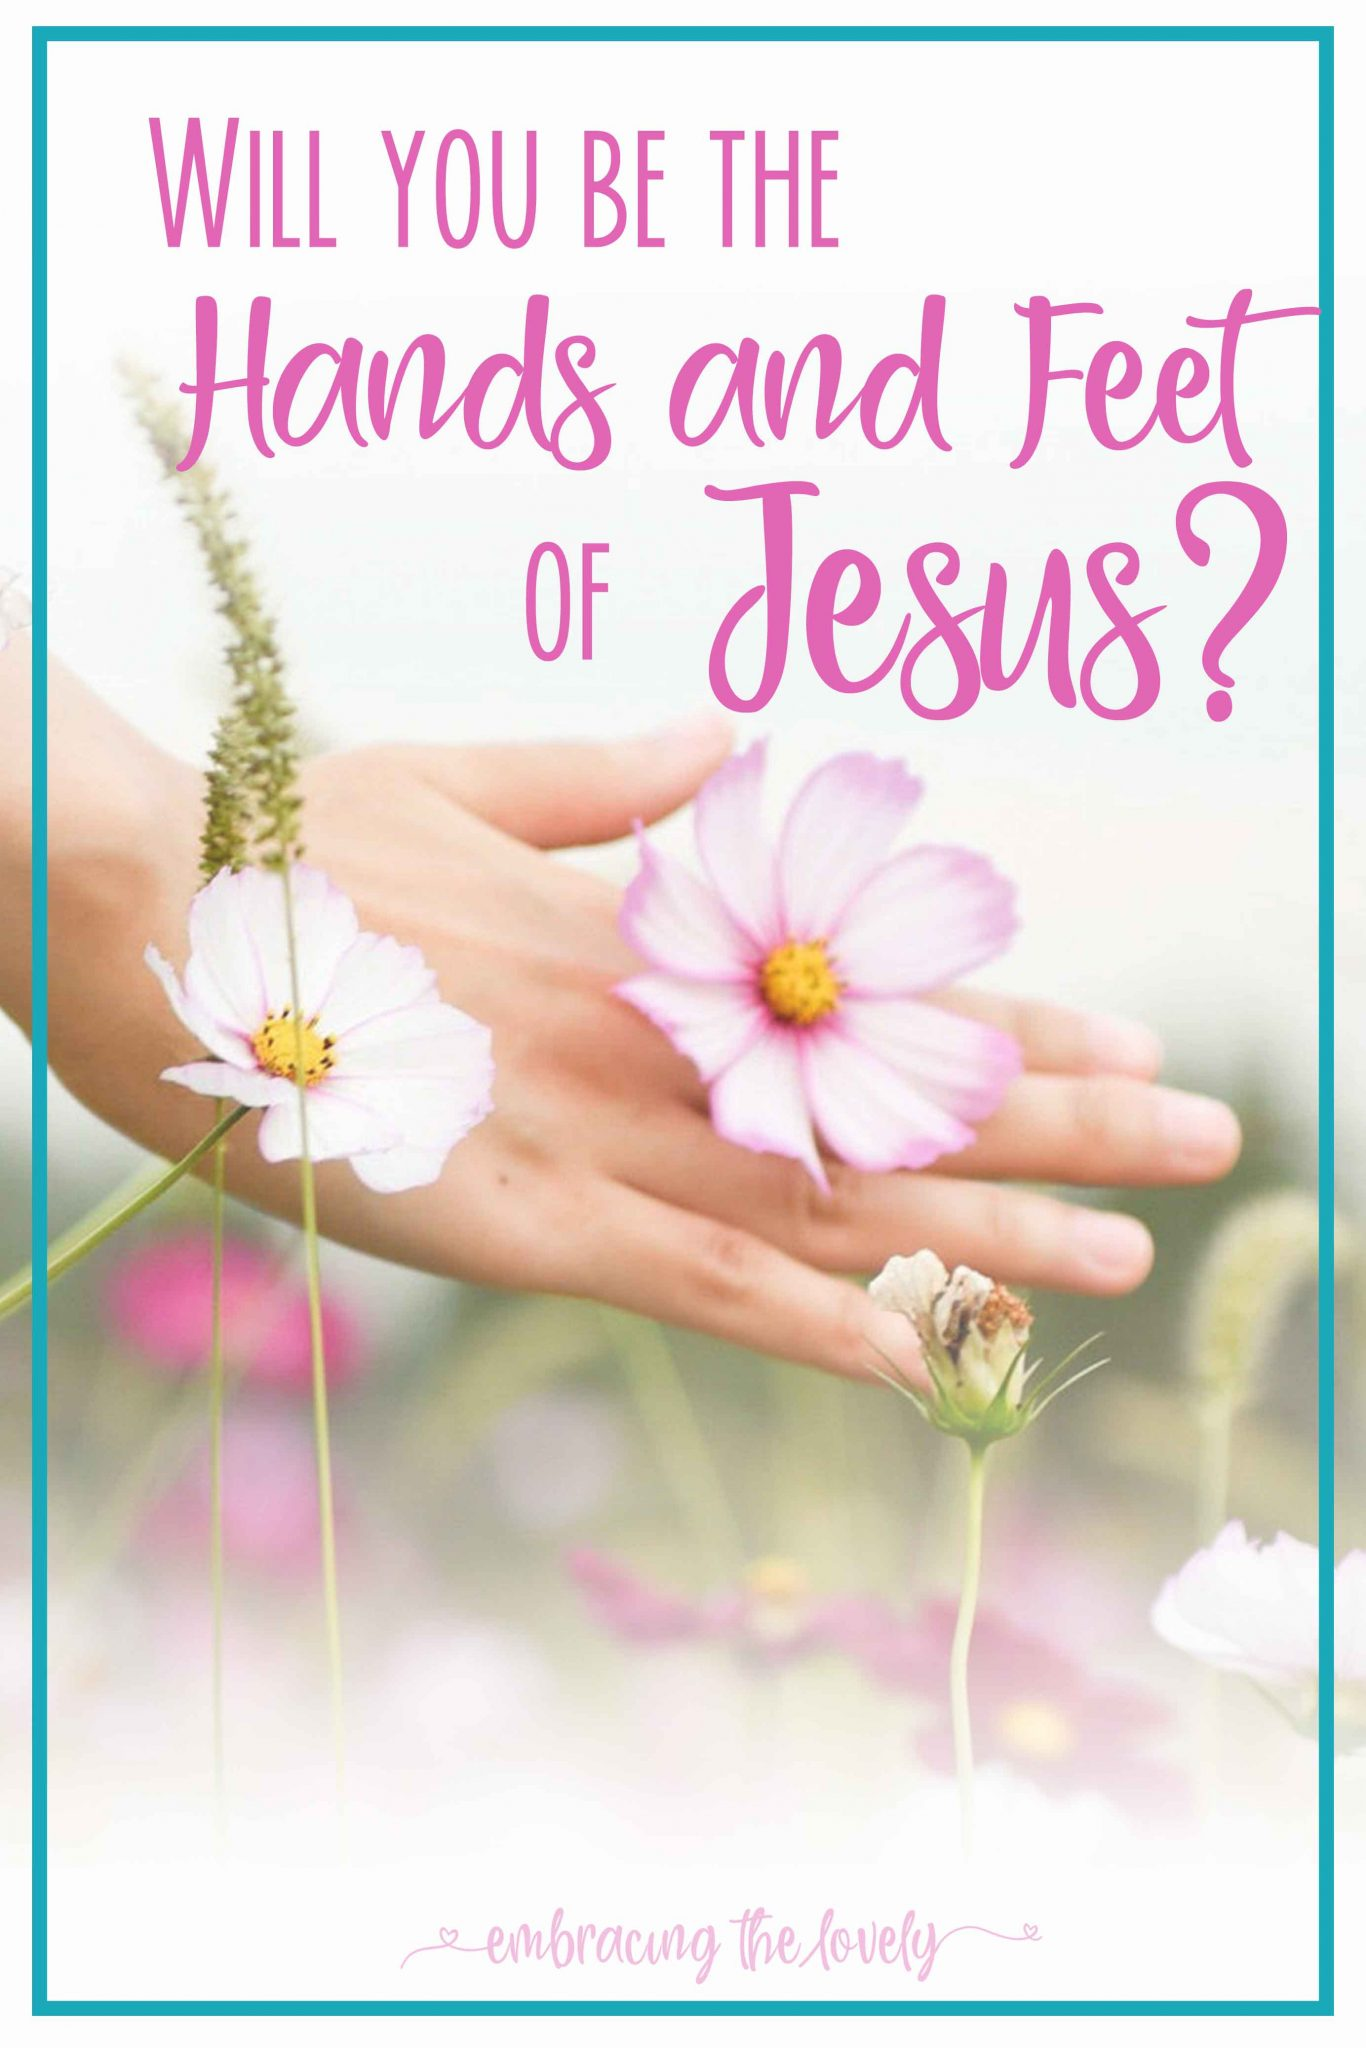 God has called you to be His hands and feet to the world around you. Accept His challenge and labor for Him!